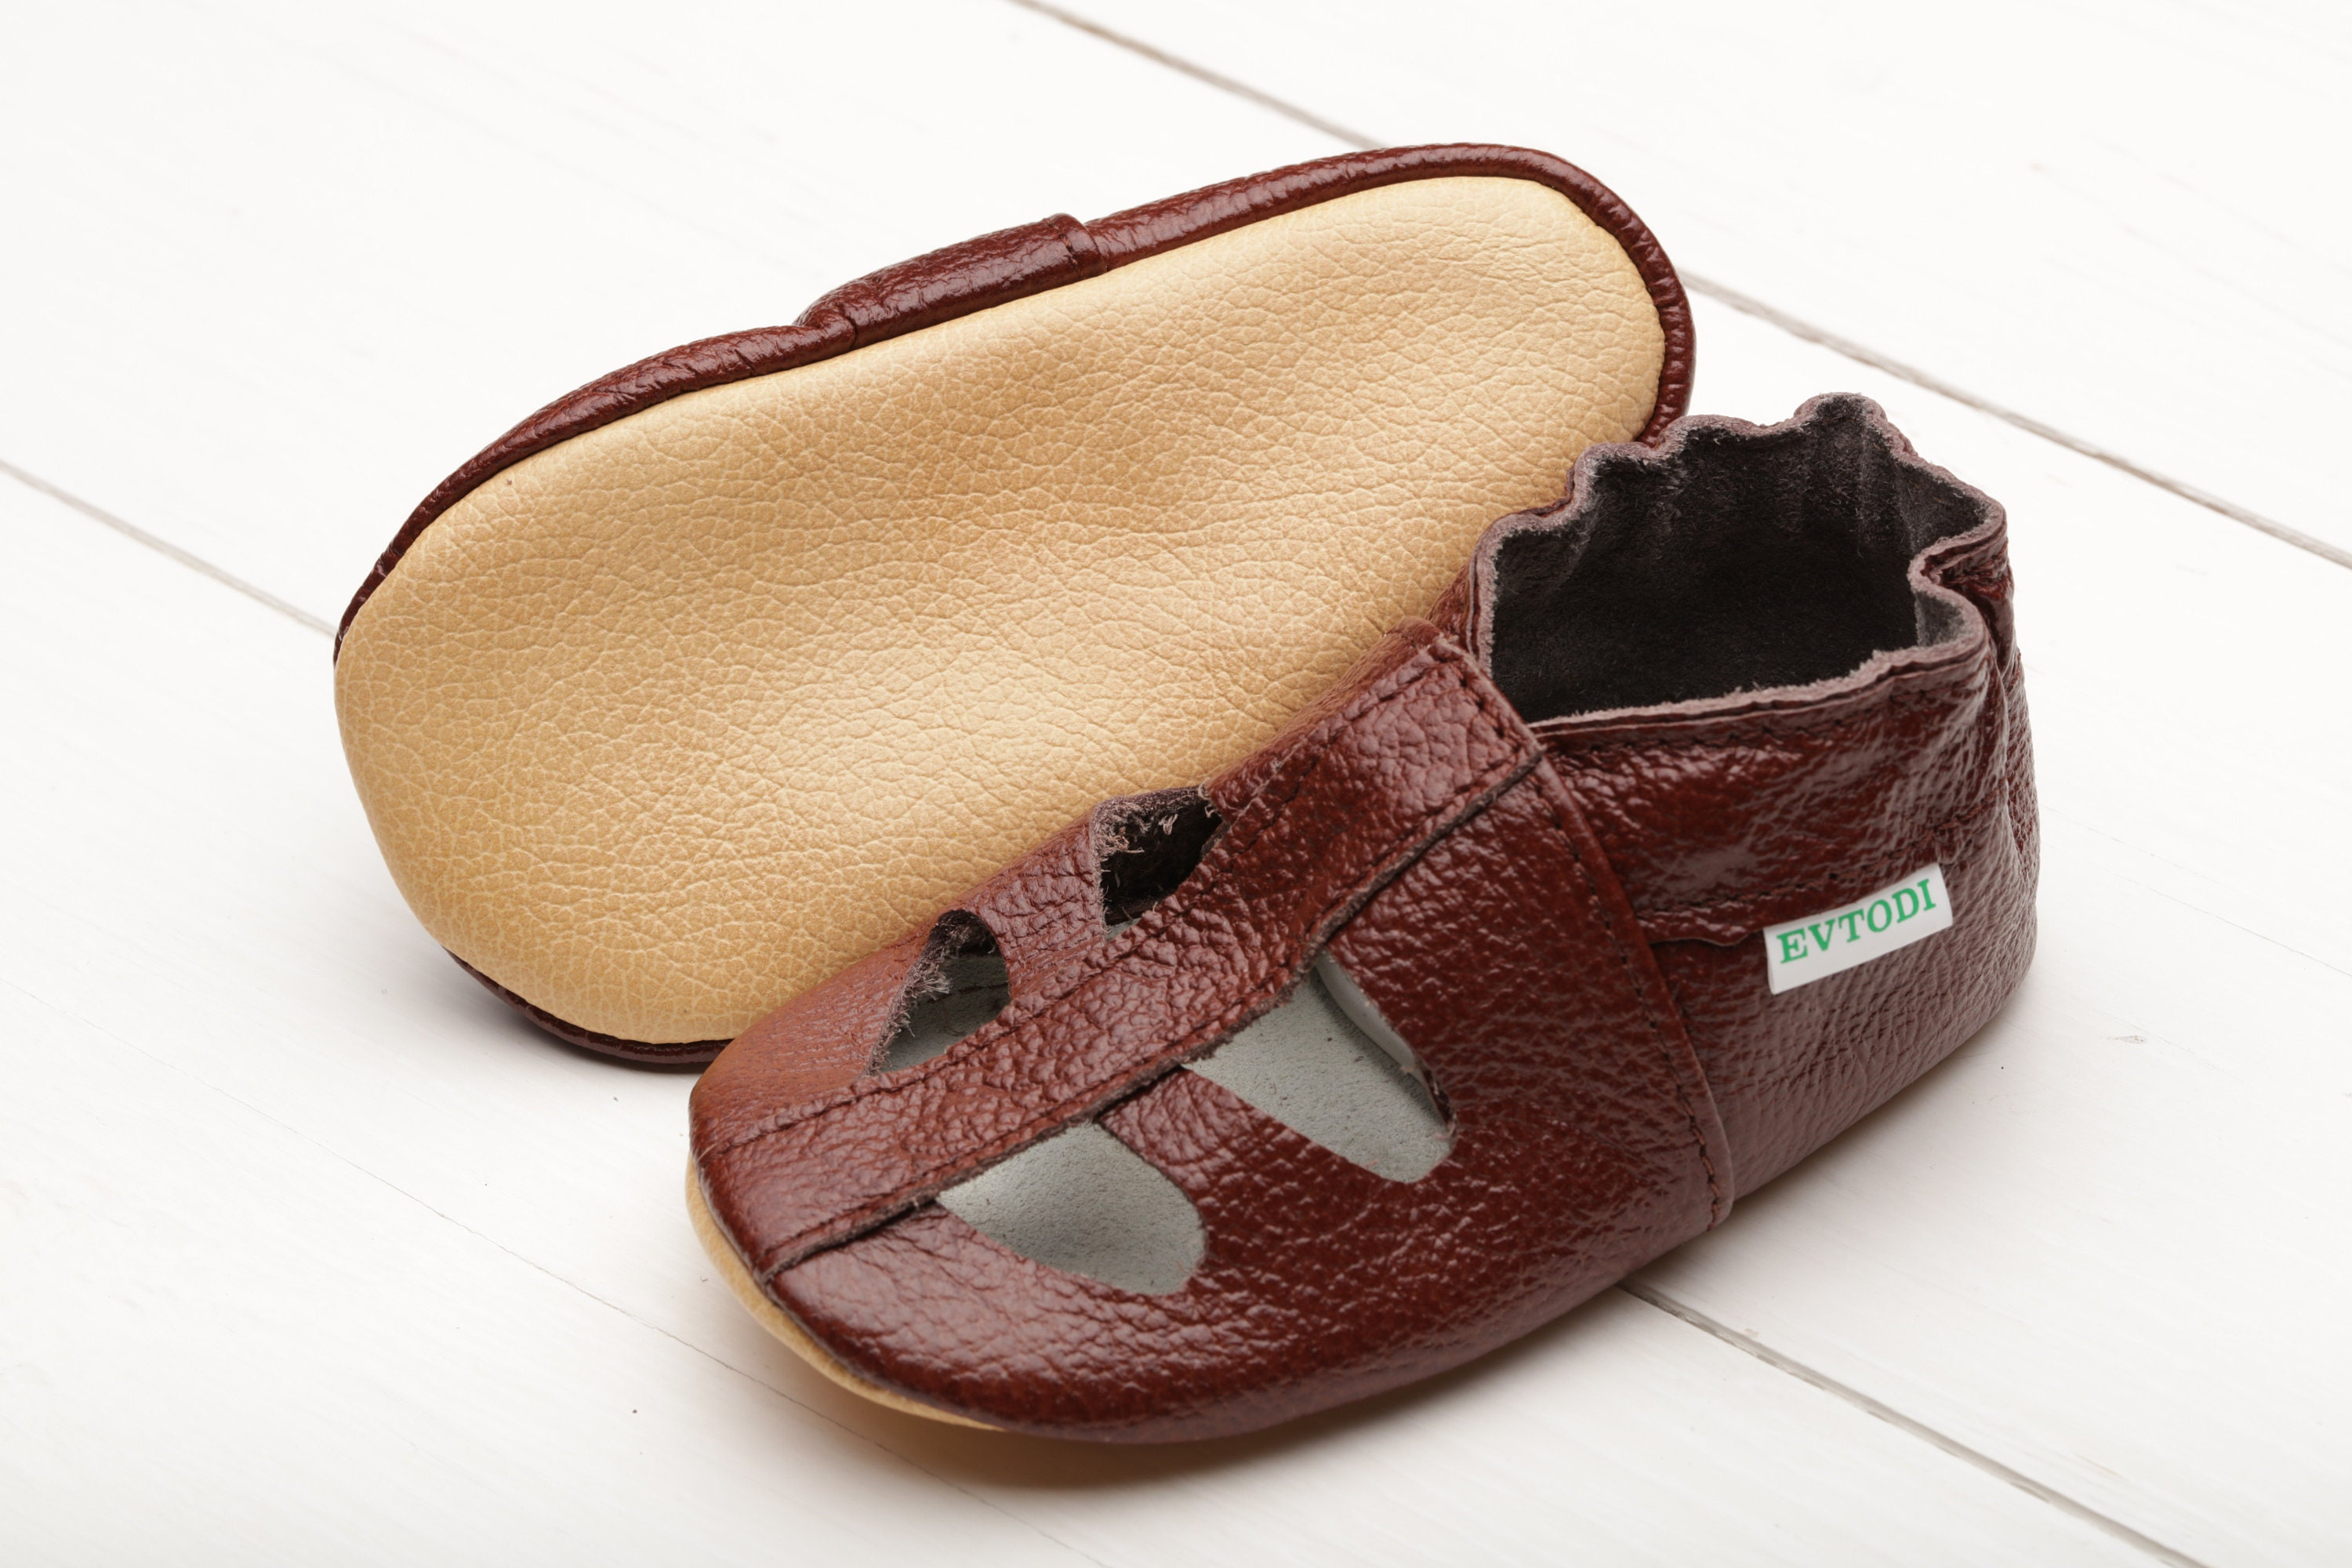 45ae092186baa Dark Brown Baby Shoes, Leather Baby Shoes, t-Strap Toddler Shoes, Baby  Sandals, Soft Sole Baby Shoes, Baby Moccasins, Infant Slippers,Glossy